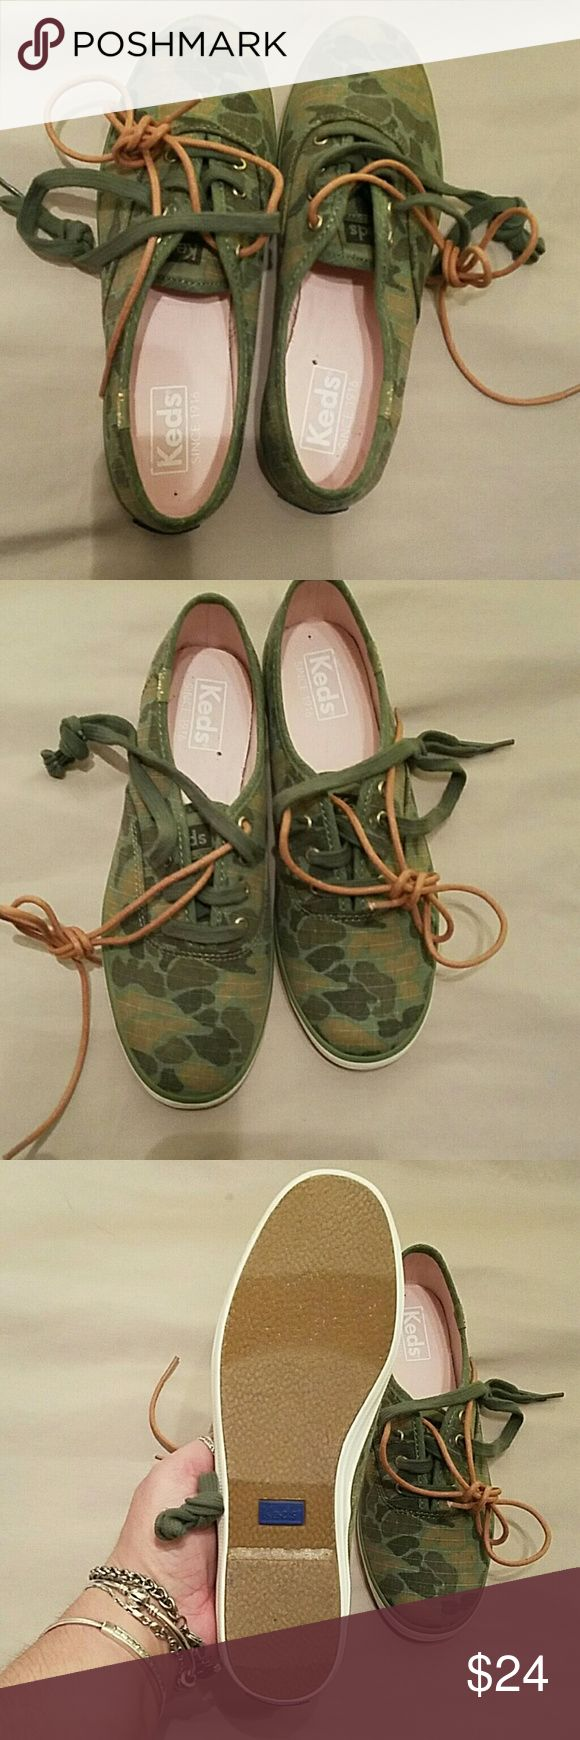 Keds sneakers Brand new sz 6 ked sneakers camouflage very cute keds Shoes Sneakers